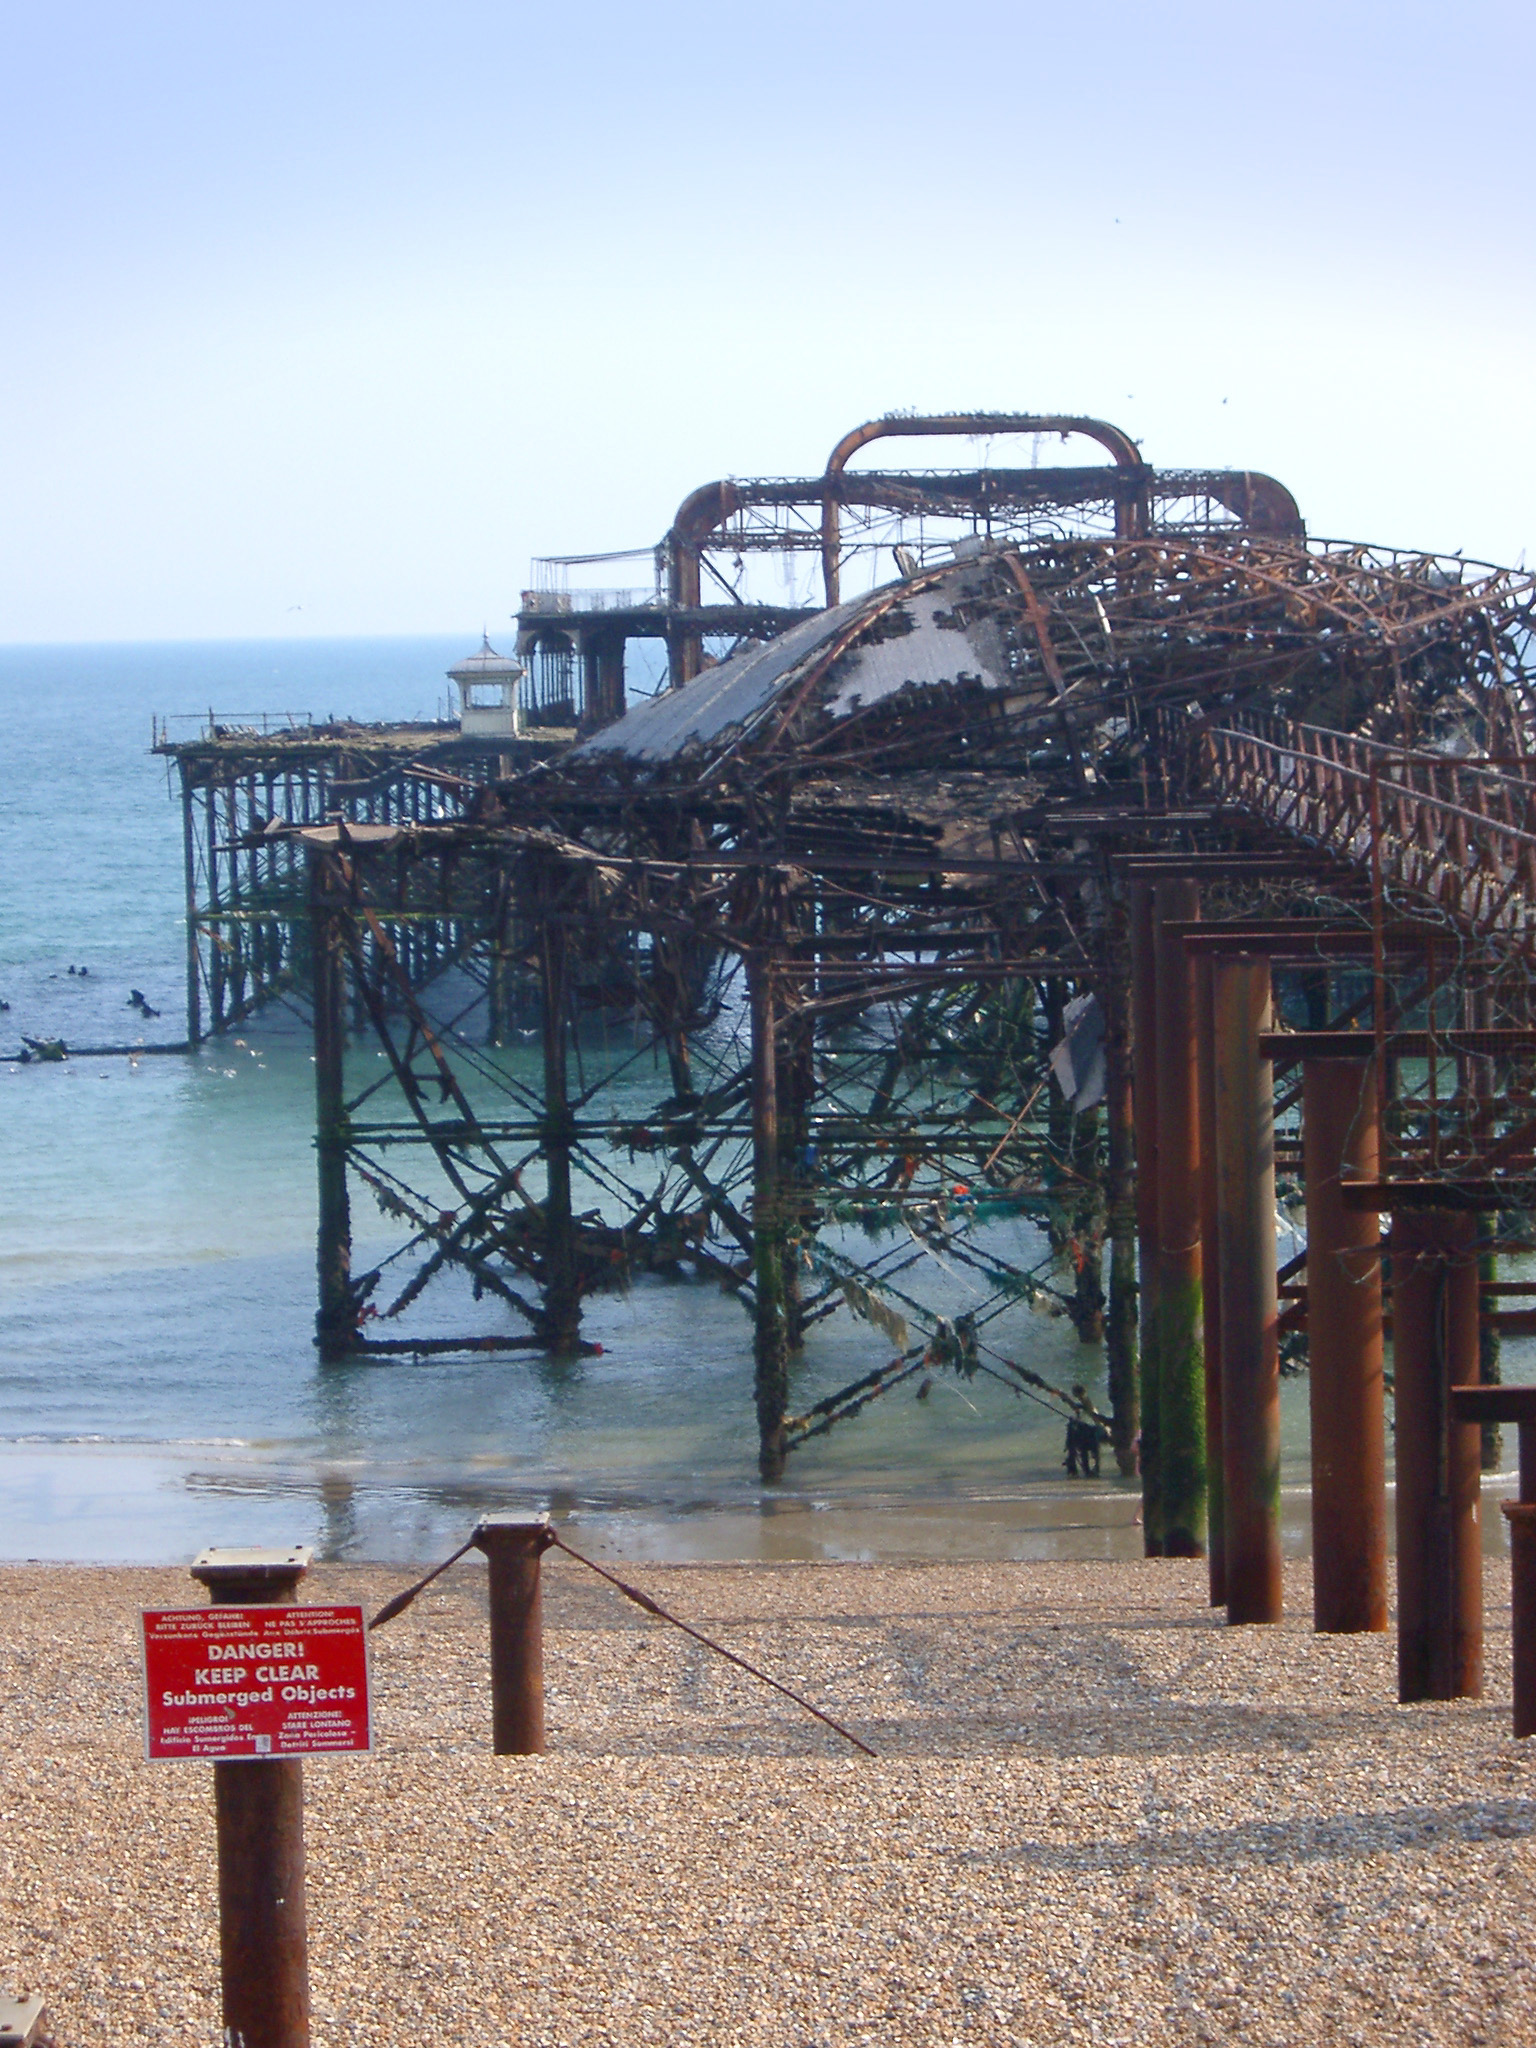 Fire damaged ruins and mangled warped iron structure of the old Brighton Pier , a Victorian landmark